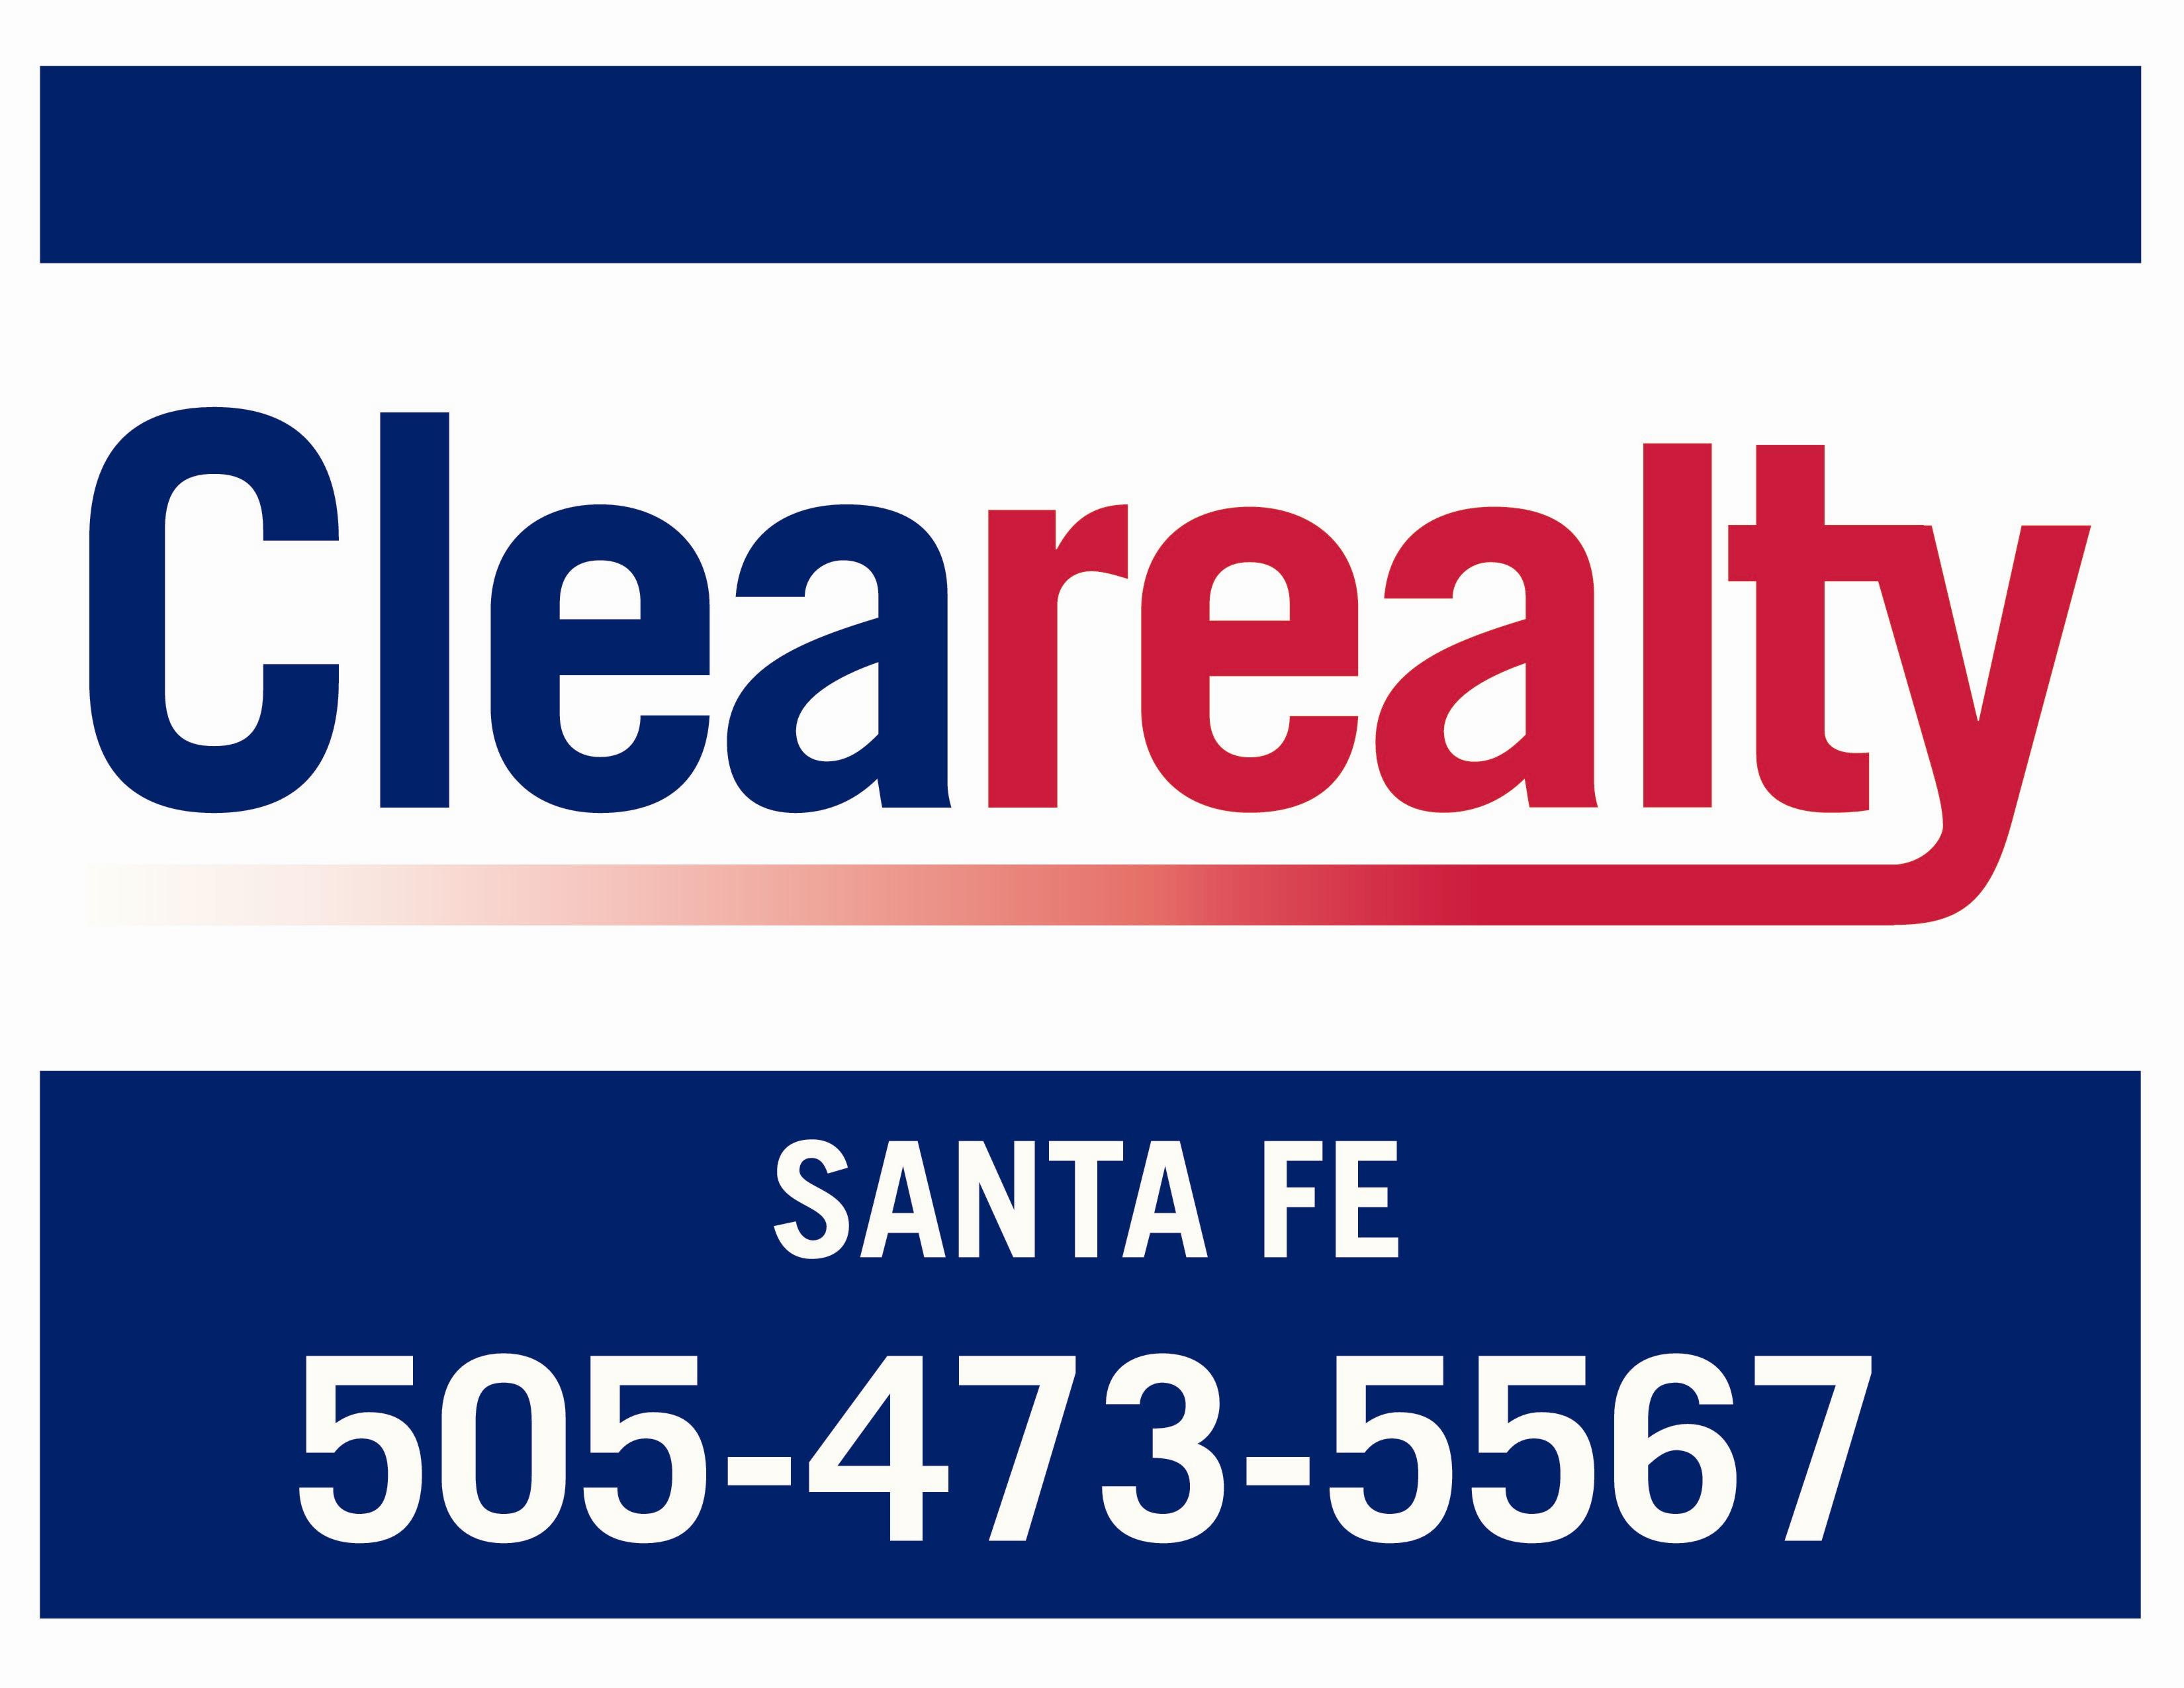 Clearealty-page-1.jpg